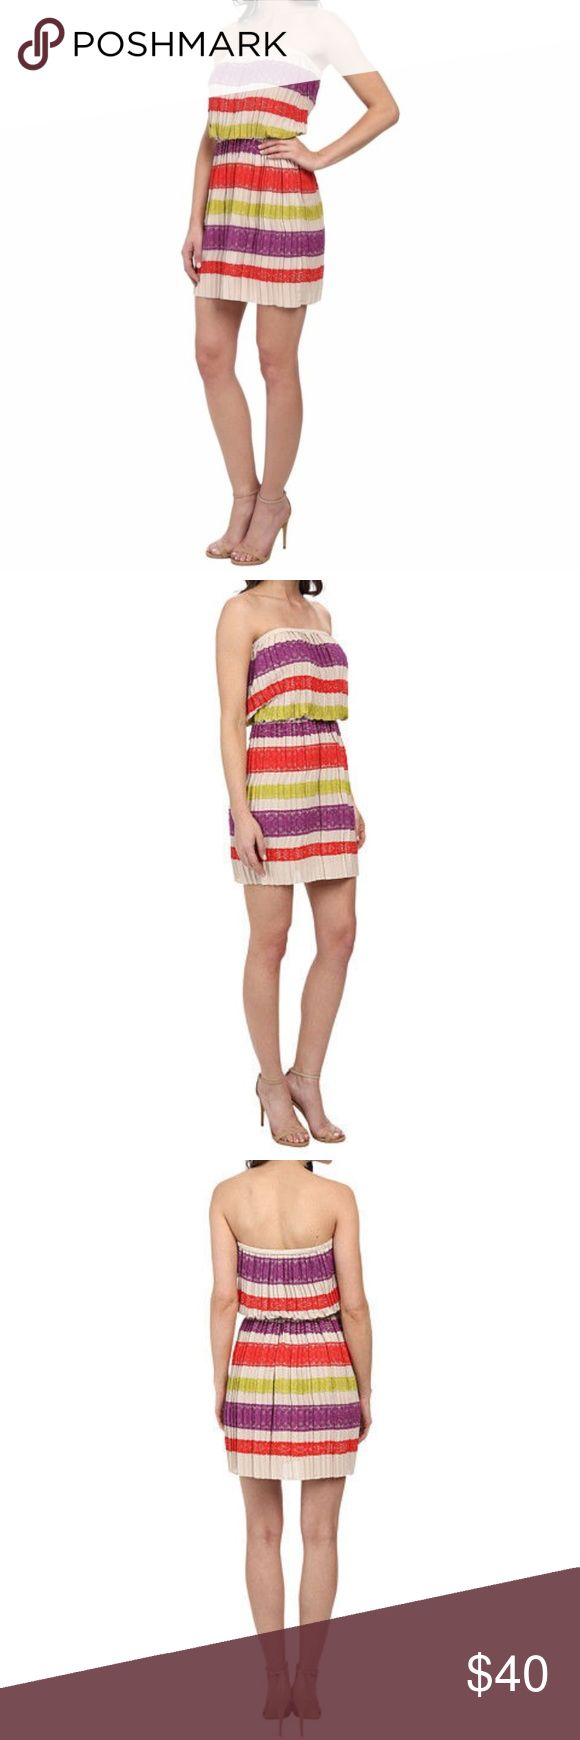 BCBG Max Azria Strapless Oatmeal Striped Dress BCBG MAX AZRIA STRAPLESS OATMEAL MATEO STRIPED DRESS  SIZE SMALL  NEW WITH TAGS $298  Sweet and sophisticated with just the right amount of sass for a youthful BCBGMAXAZRIA® style. Strapless design with covered elastic band for a secure fit. Pintucked pleating throughout. Vibrant lace overlay in a striped pattern throughout. Blouson waist. Pull-on construction. 100% polyester; Contrast: 80% cotton, 20% nylon; Contrast 2: 73% cotton, 27% nylon…